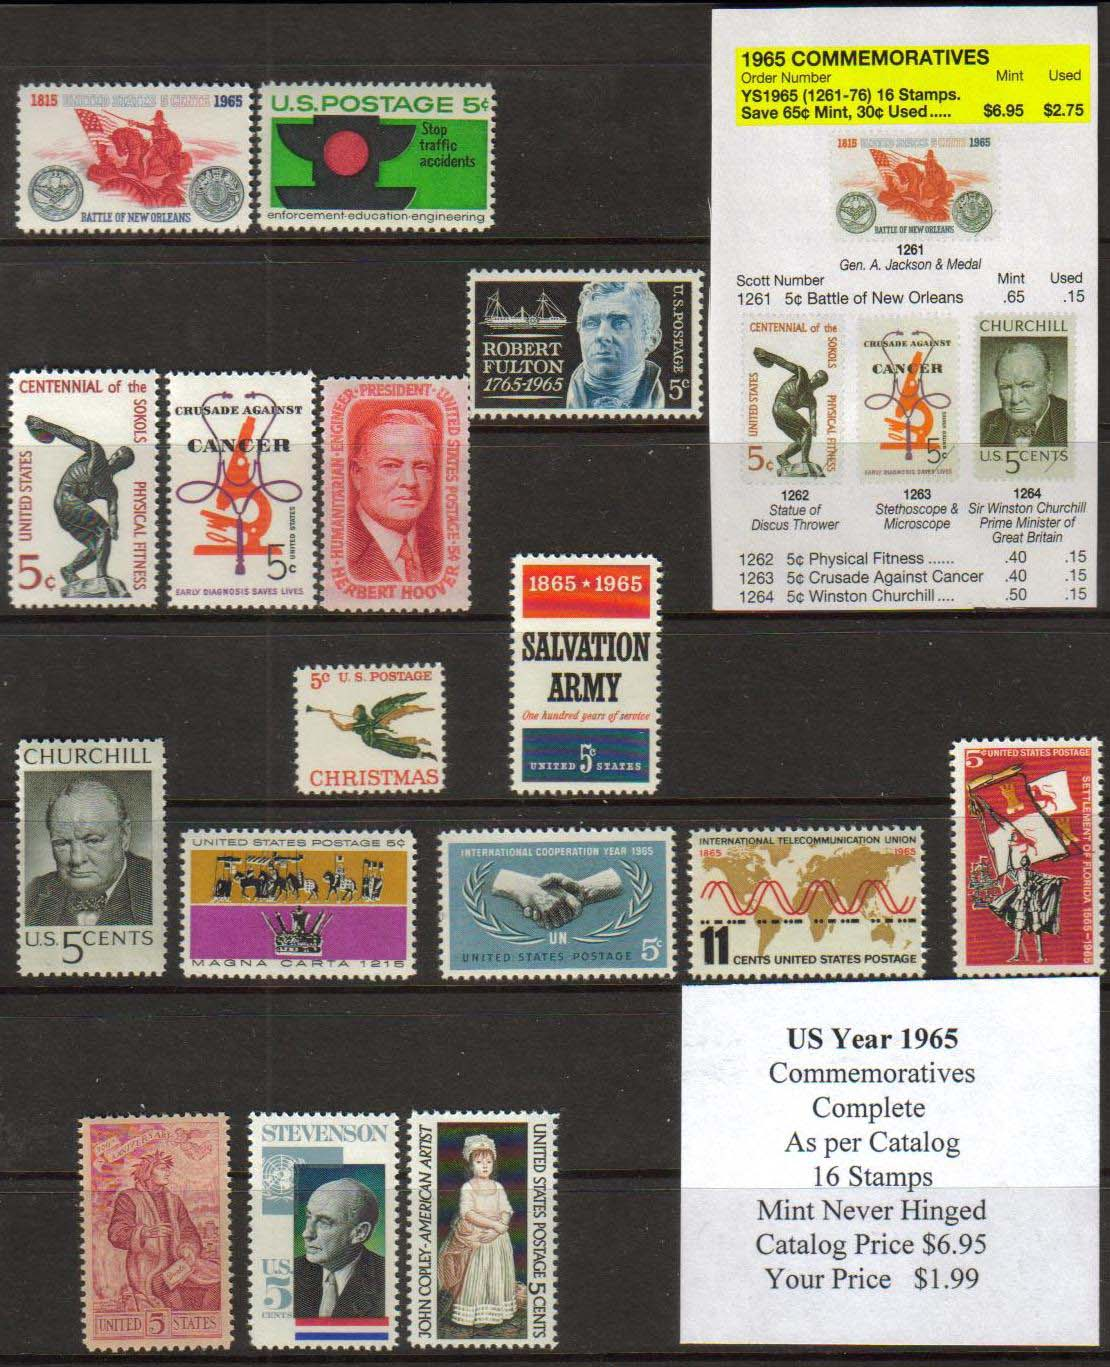 1965 COMMEMORATIVES, 16 STAMPS